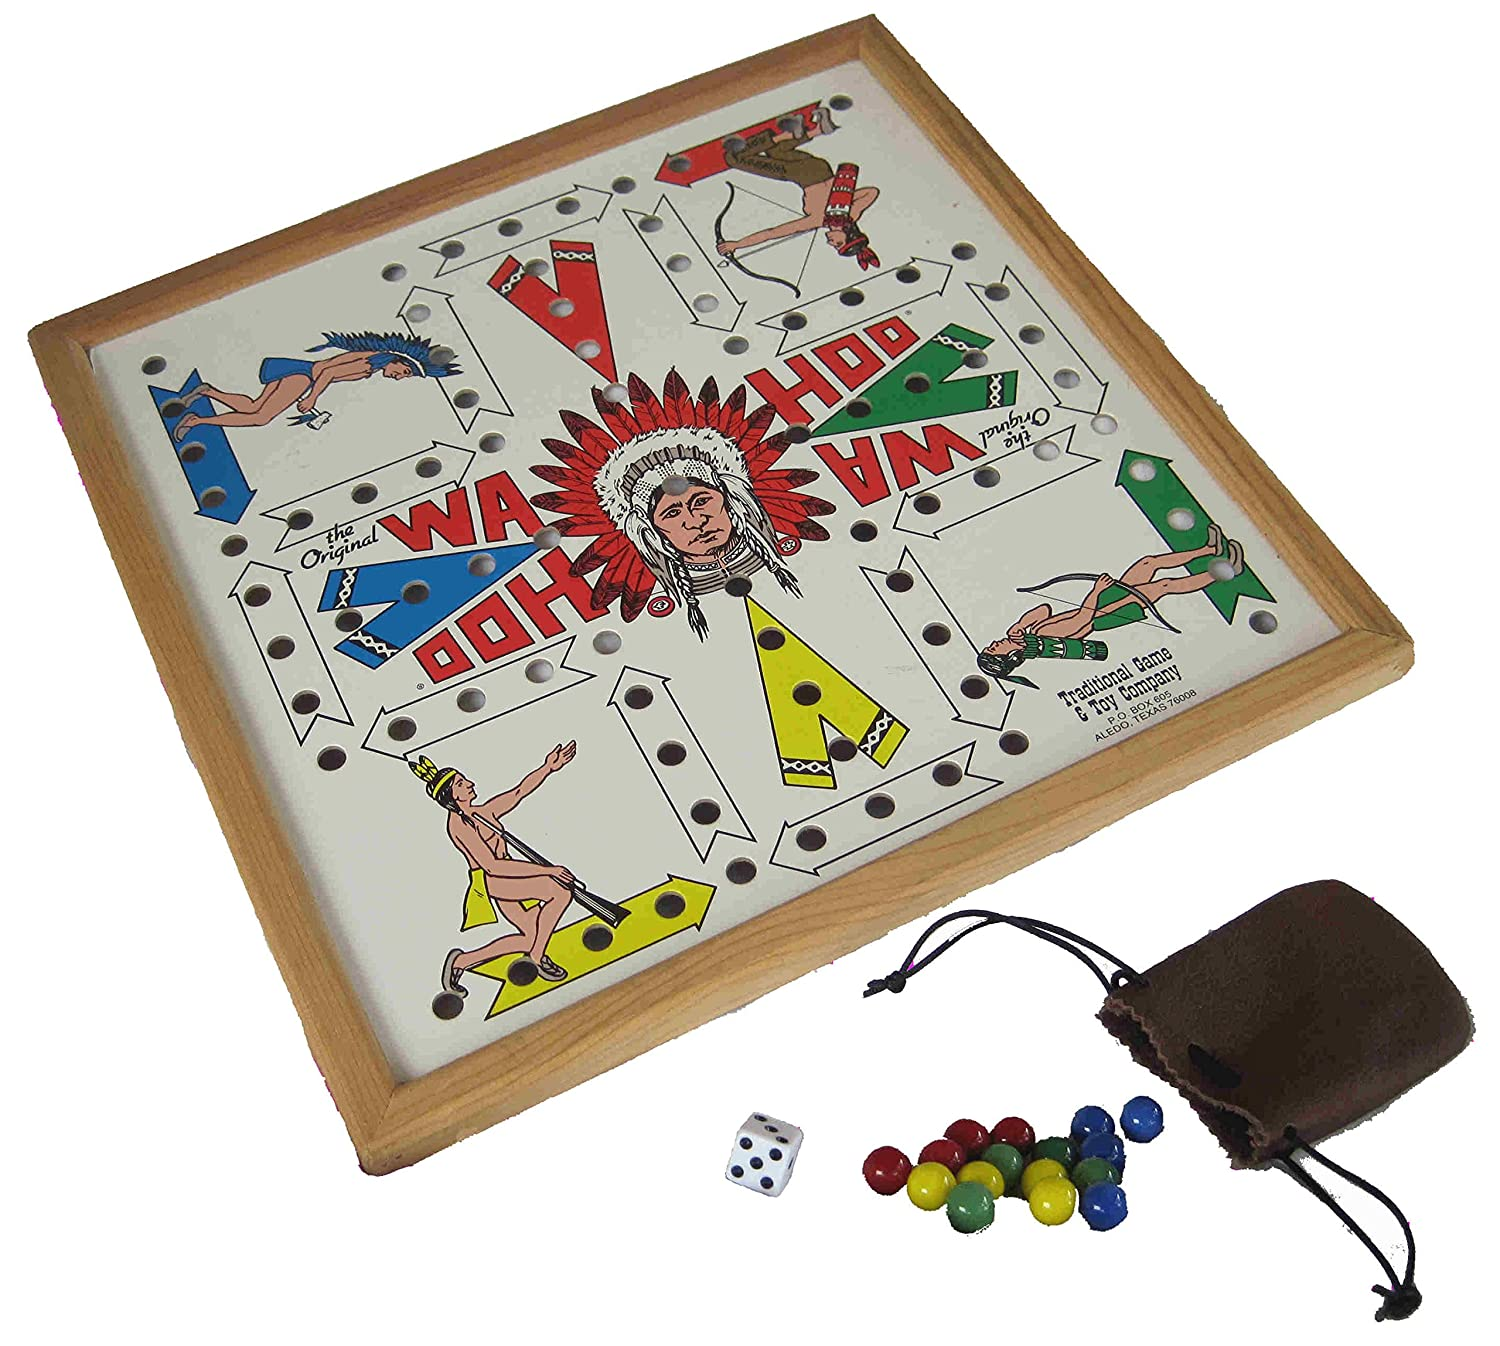 Amazon traditional game toy company the original wa hoo toys amazon traditional game toy company the original wa hoo toys games maxwellsz